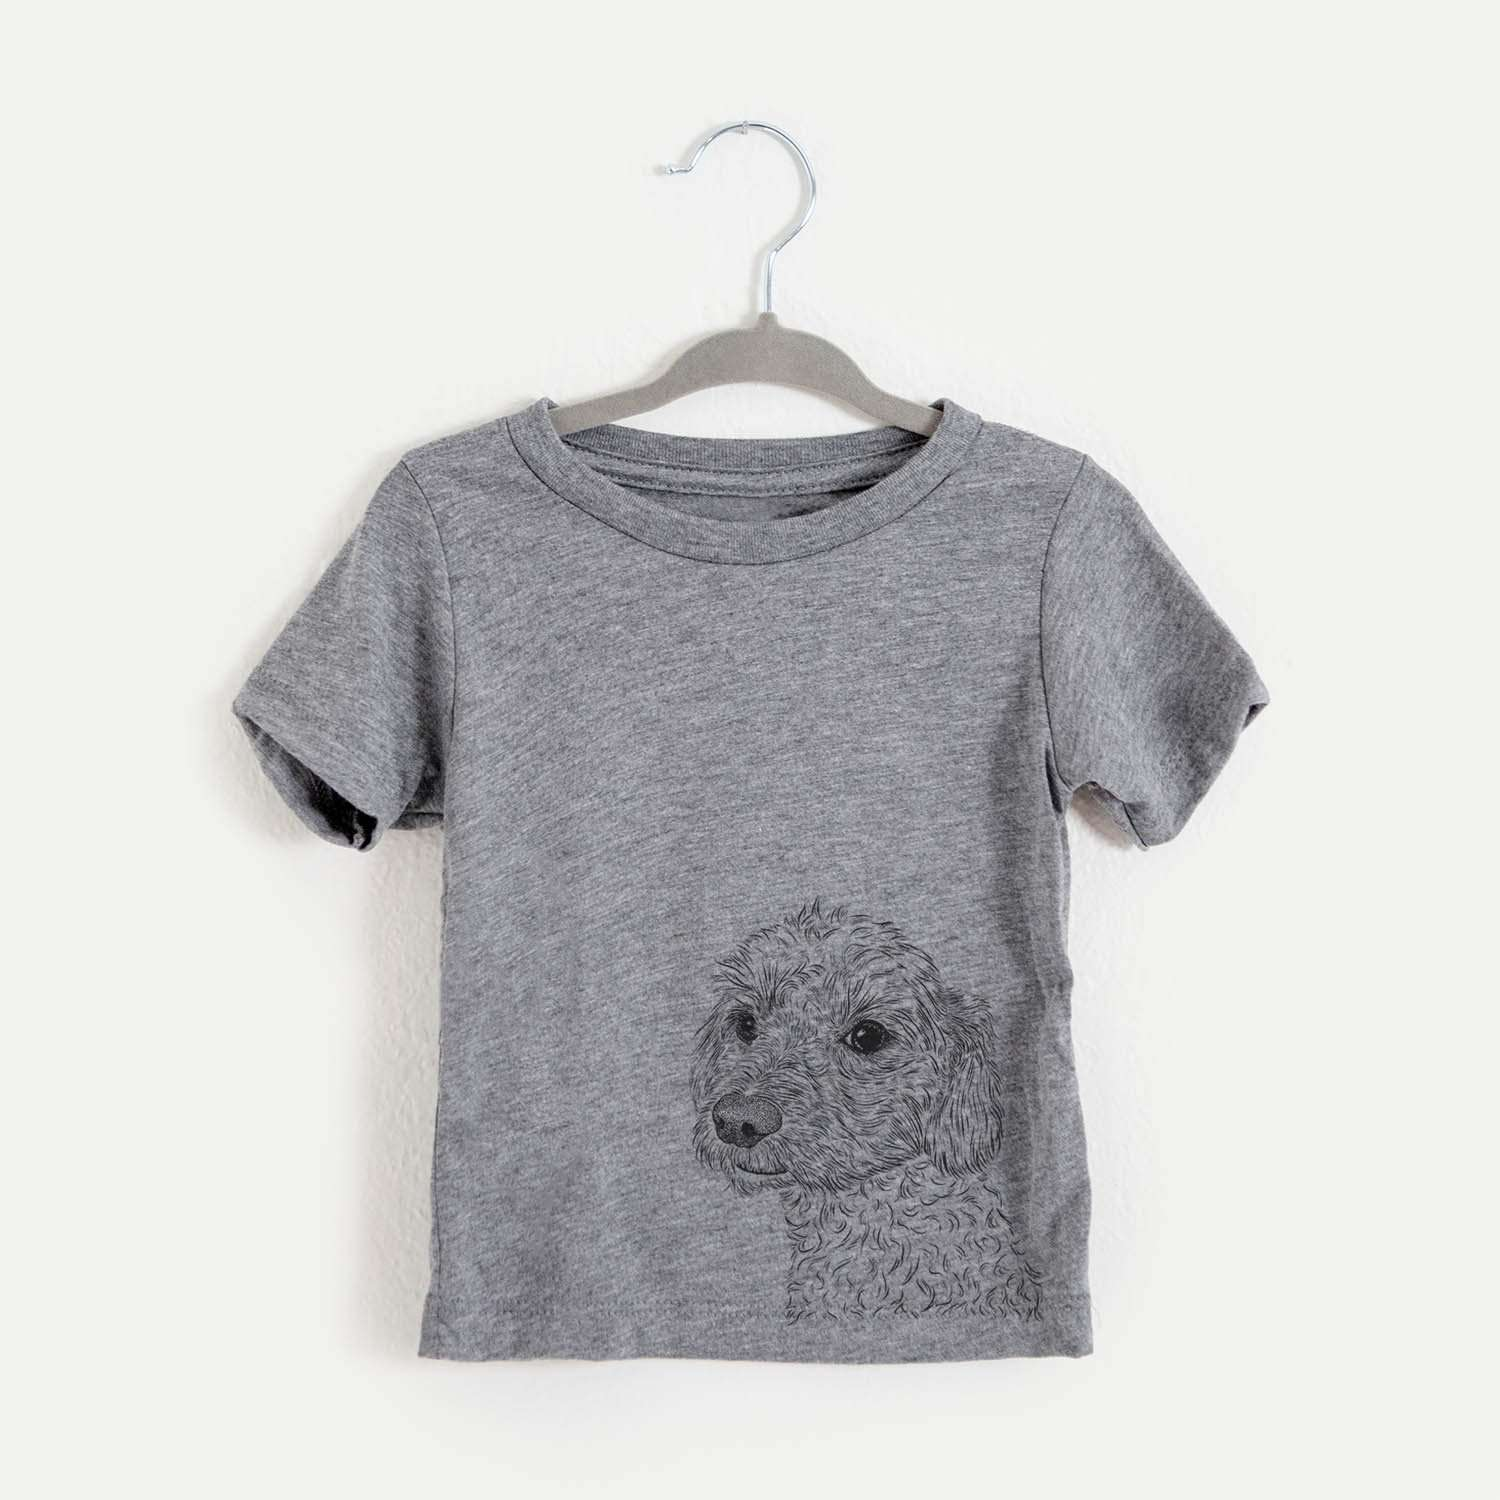 Georgie Boy the Mixed Breed - Kids/Youth/Toddler Shirt